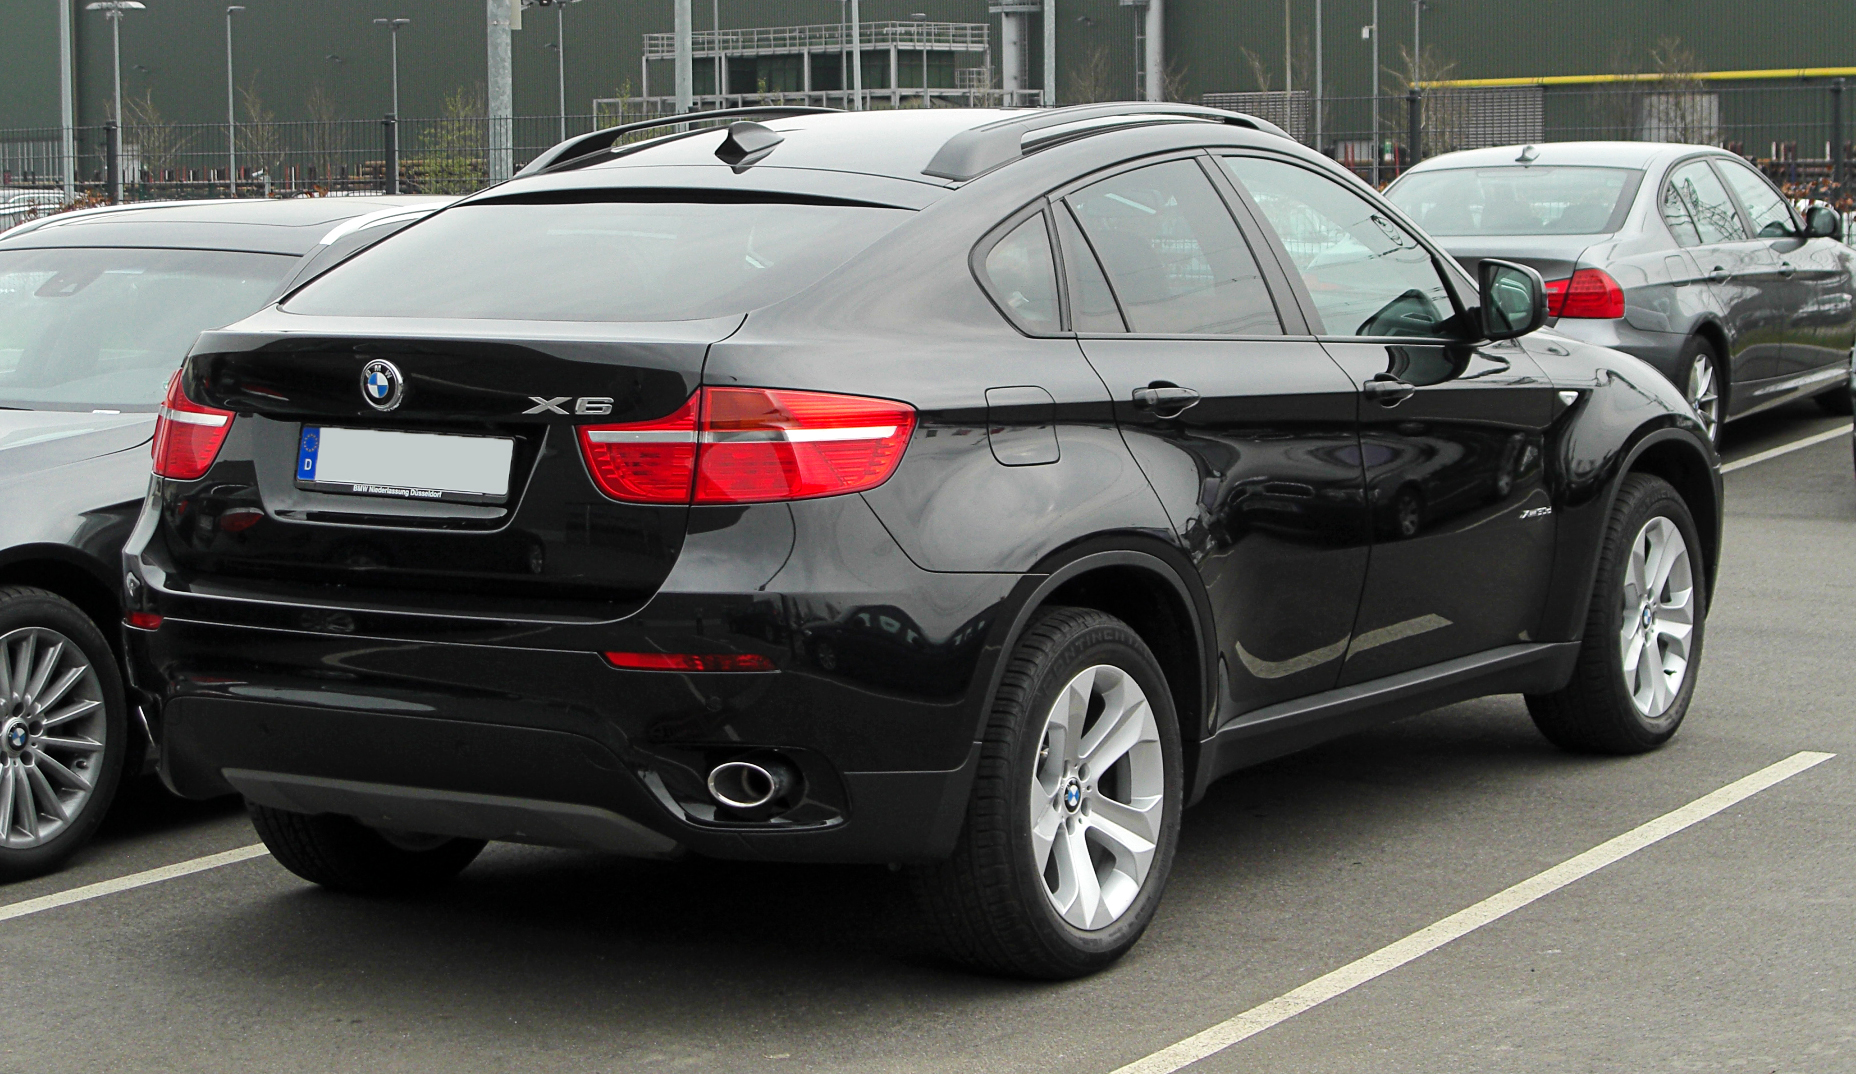 file bmw x6 xdrive30d e71 heckansicht 26 m rz 2011 d wikimedia commons. Black Bedroom Furniture Sets. Home Design Ideas